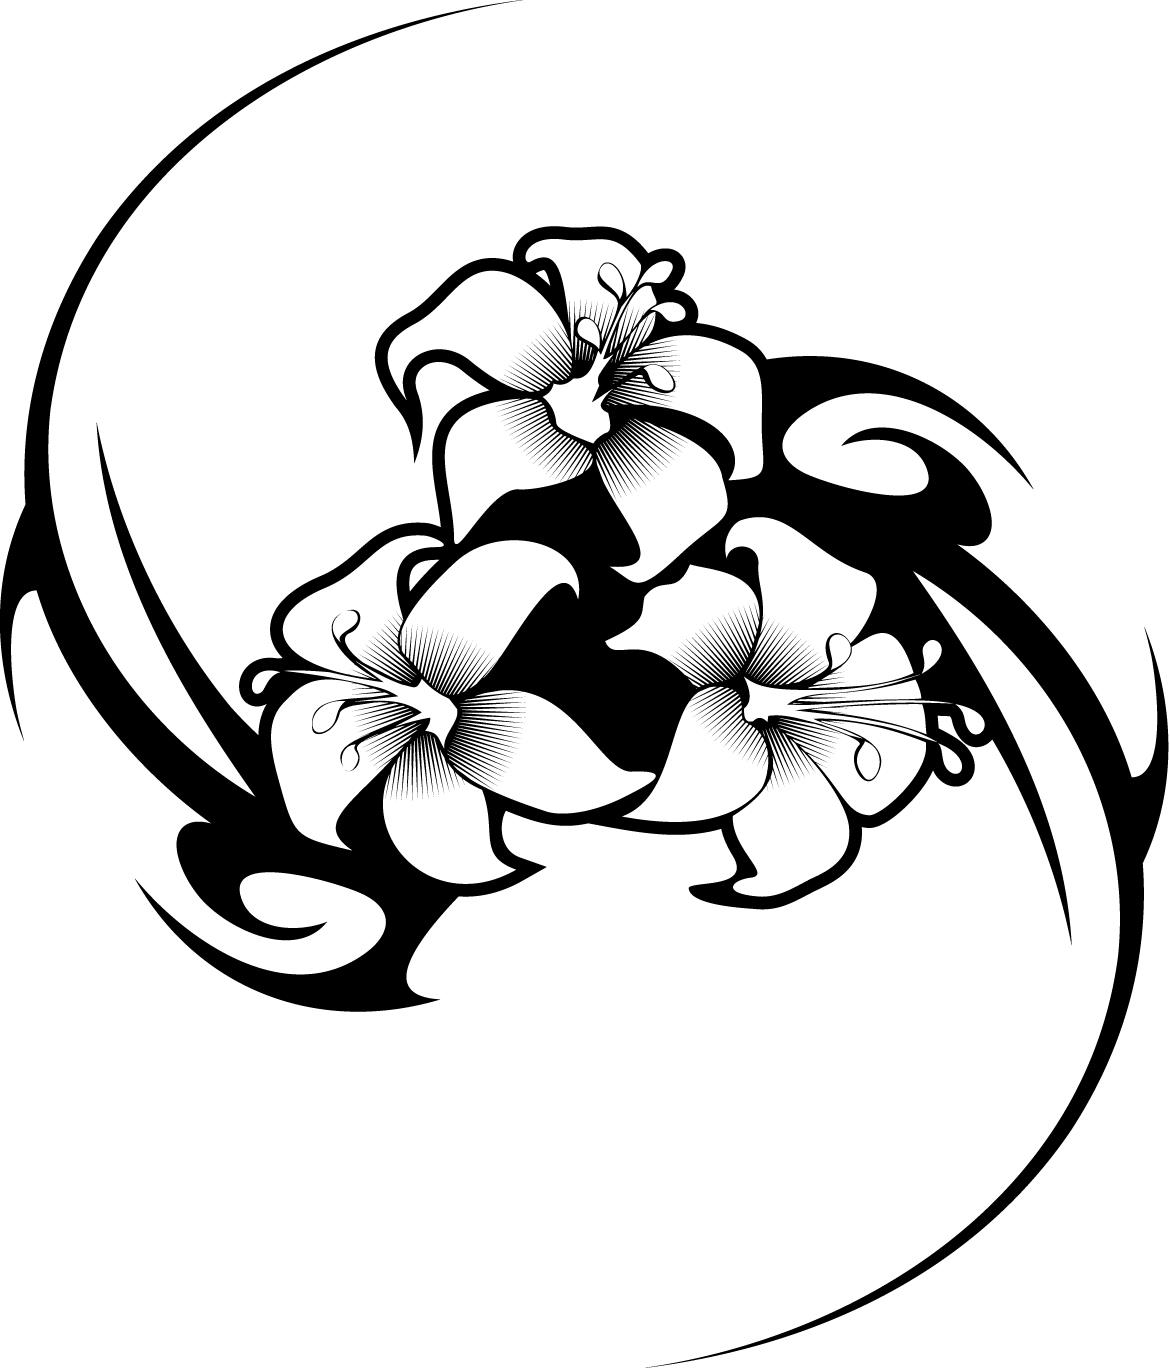 Flower Tribal Designs Clipart Best Ideas And Designs